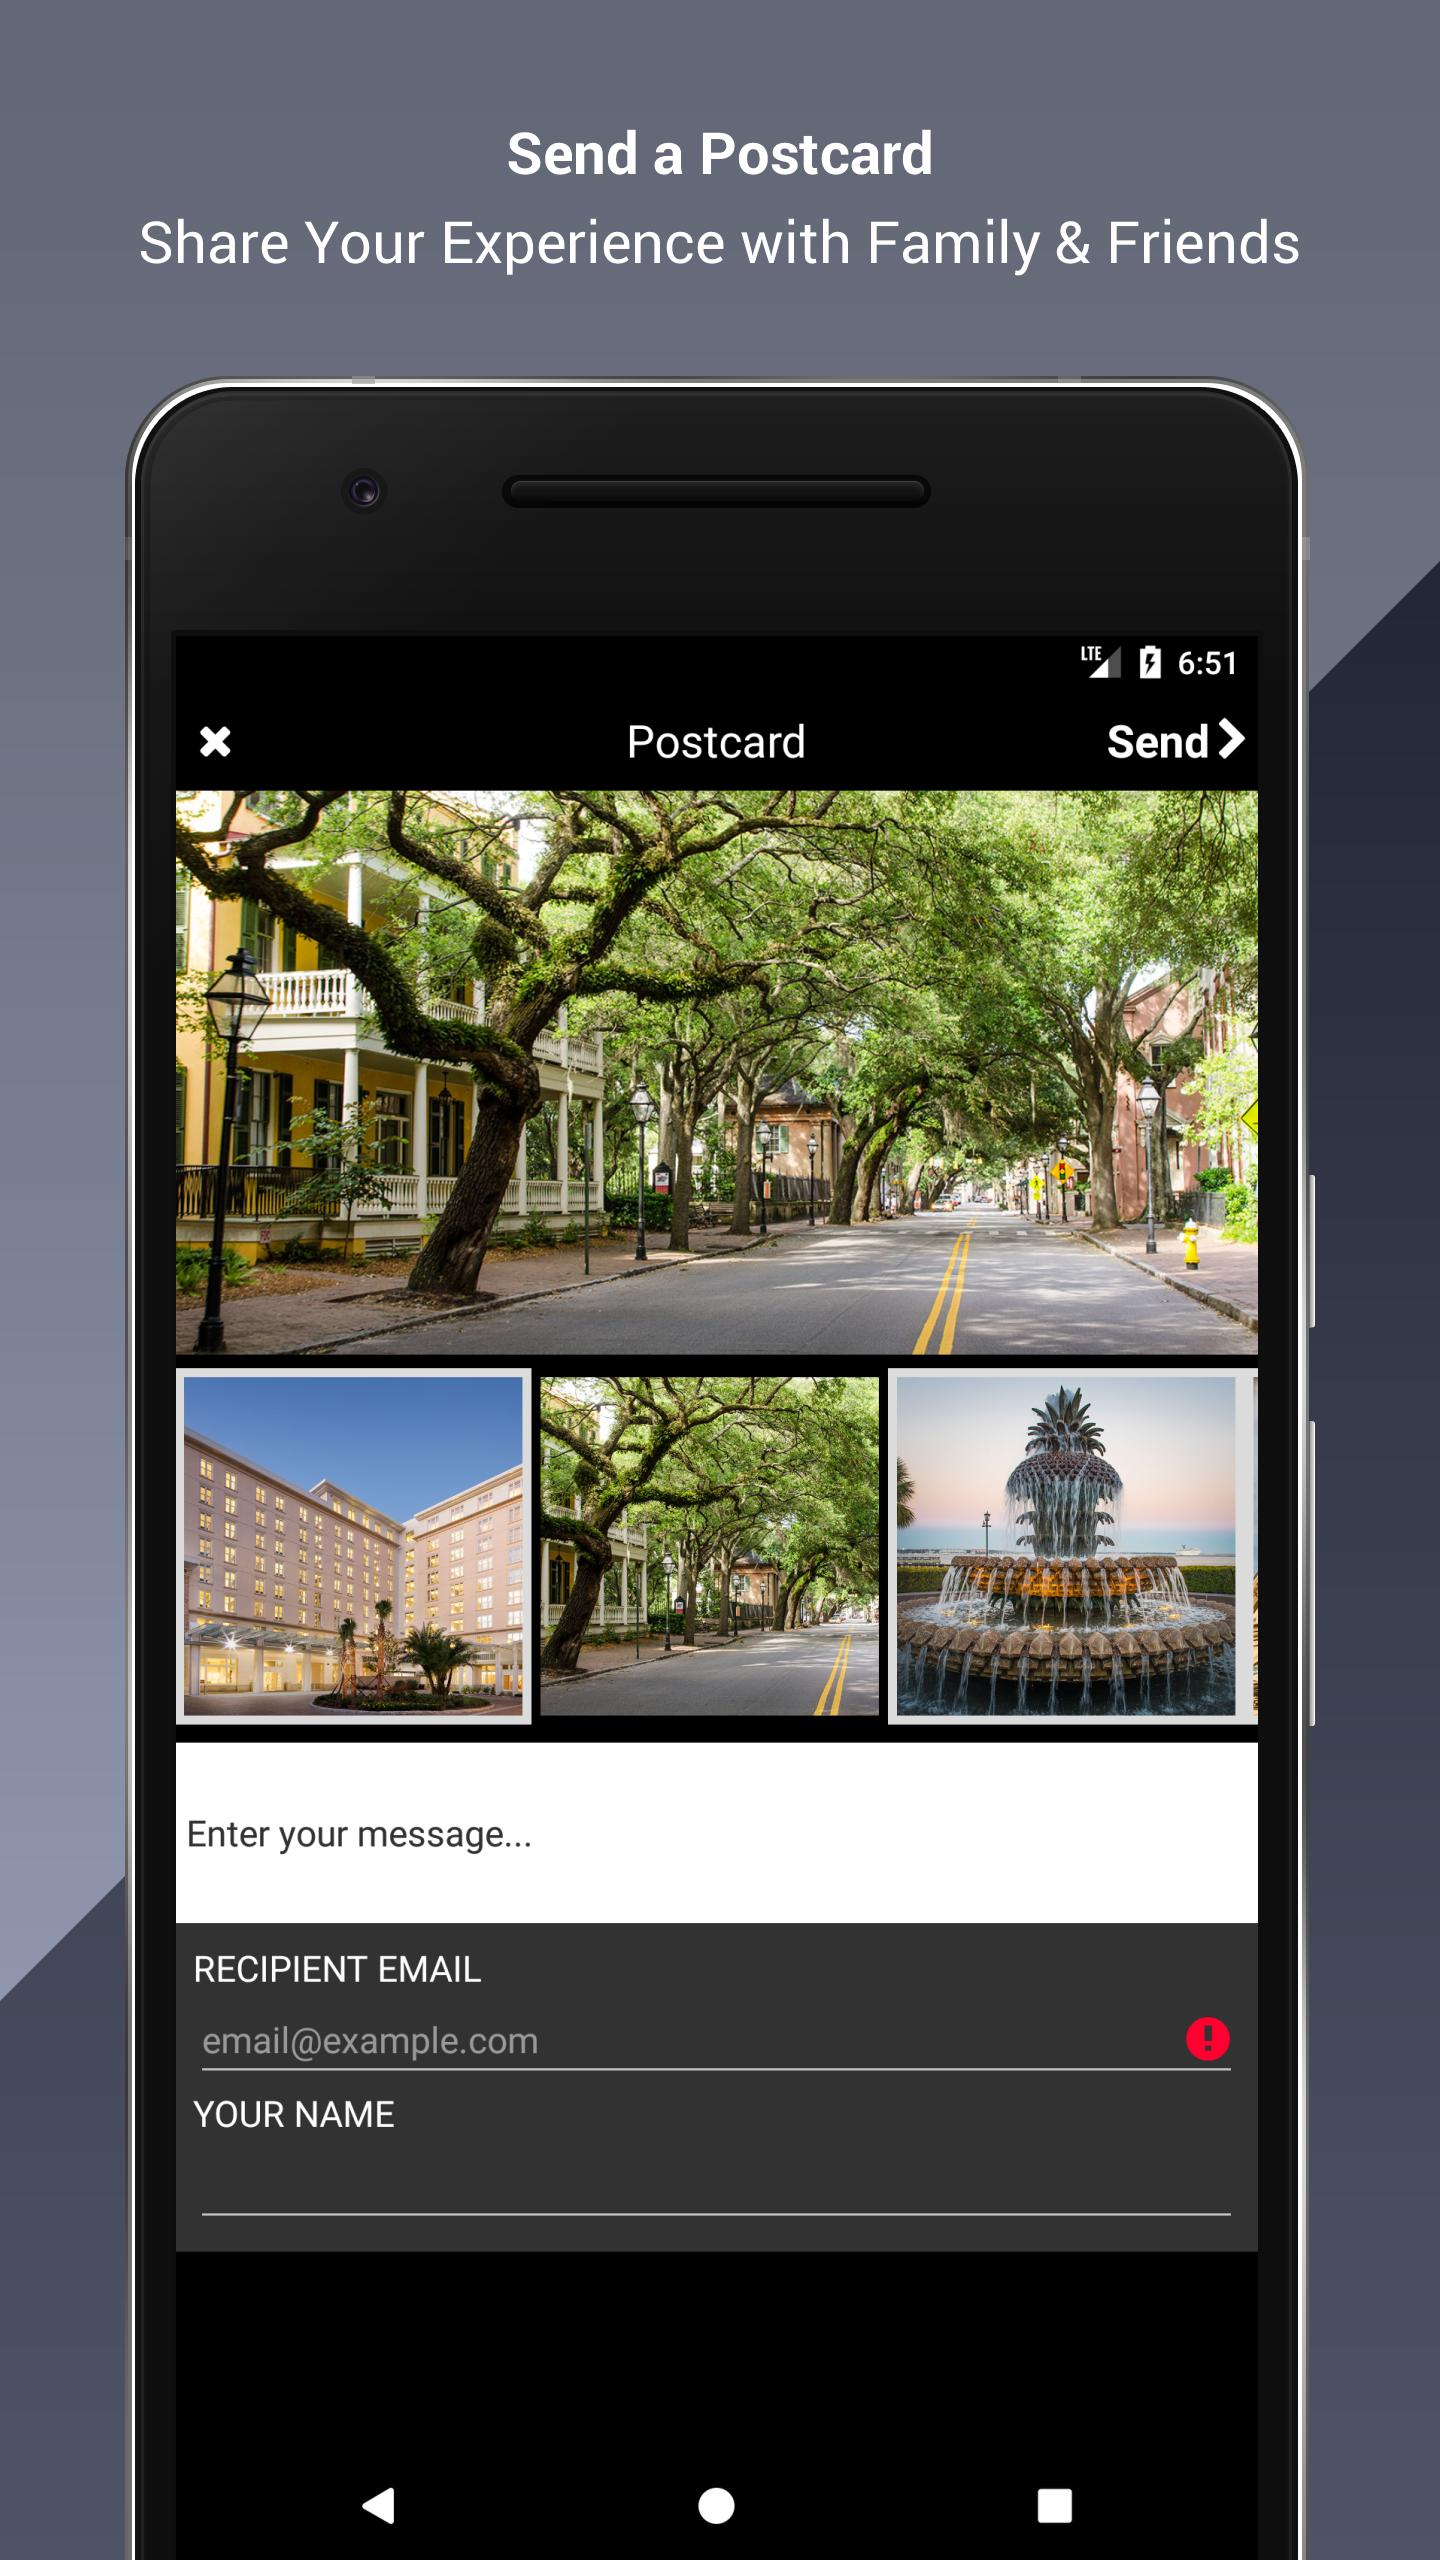 Hyatt Place Charleston for Android - APK Download